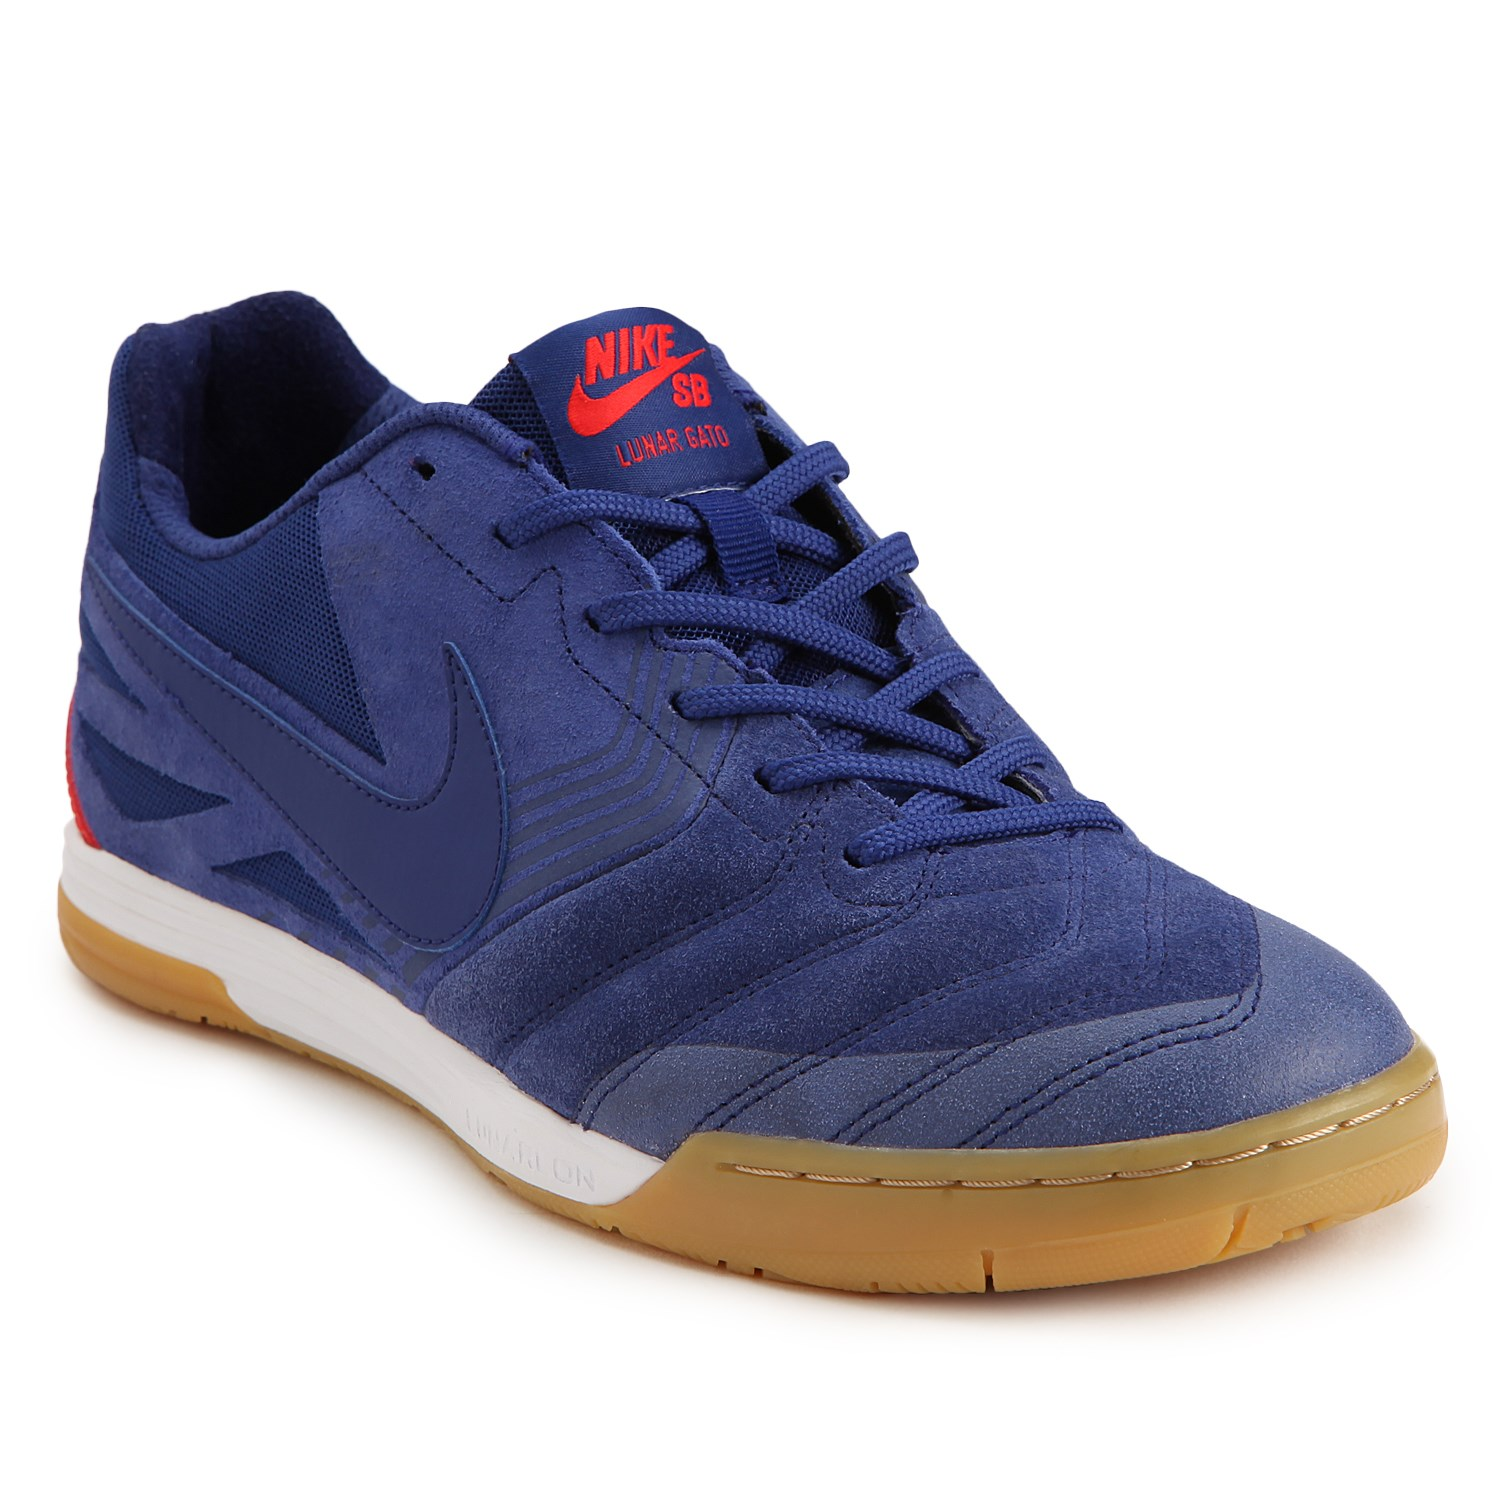 save off 4687c 06c40 Nike SB Lunar Gato Shoes   evo